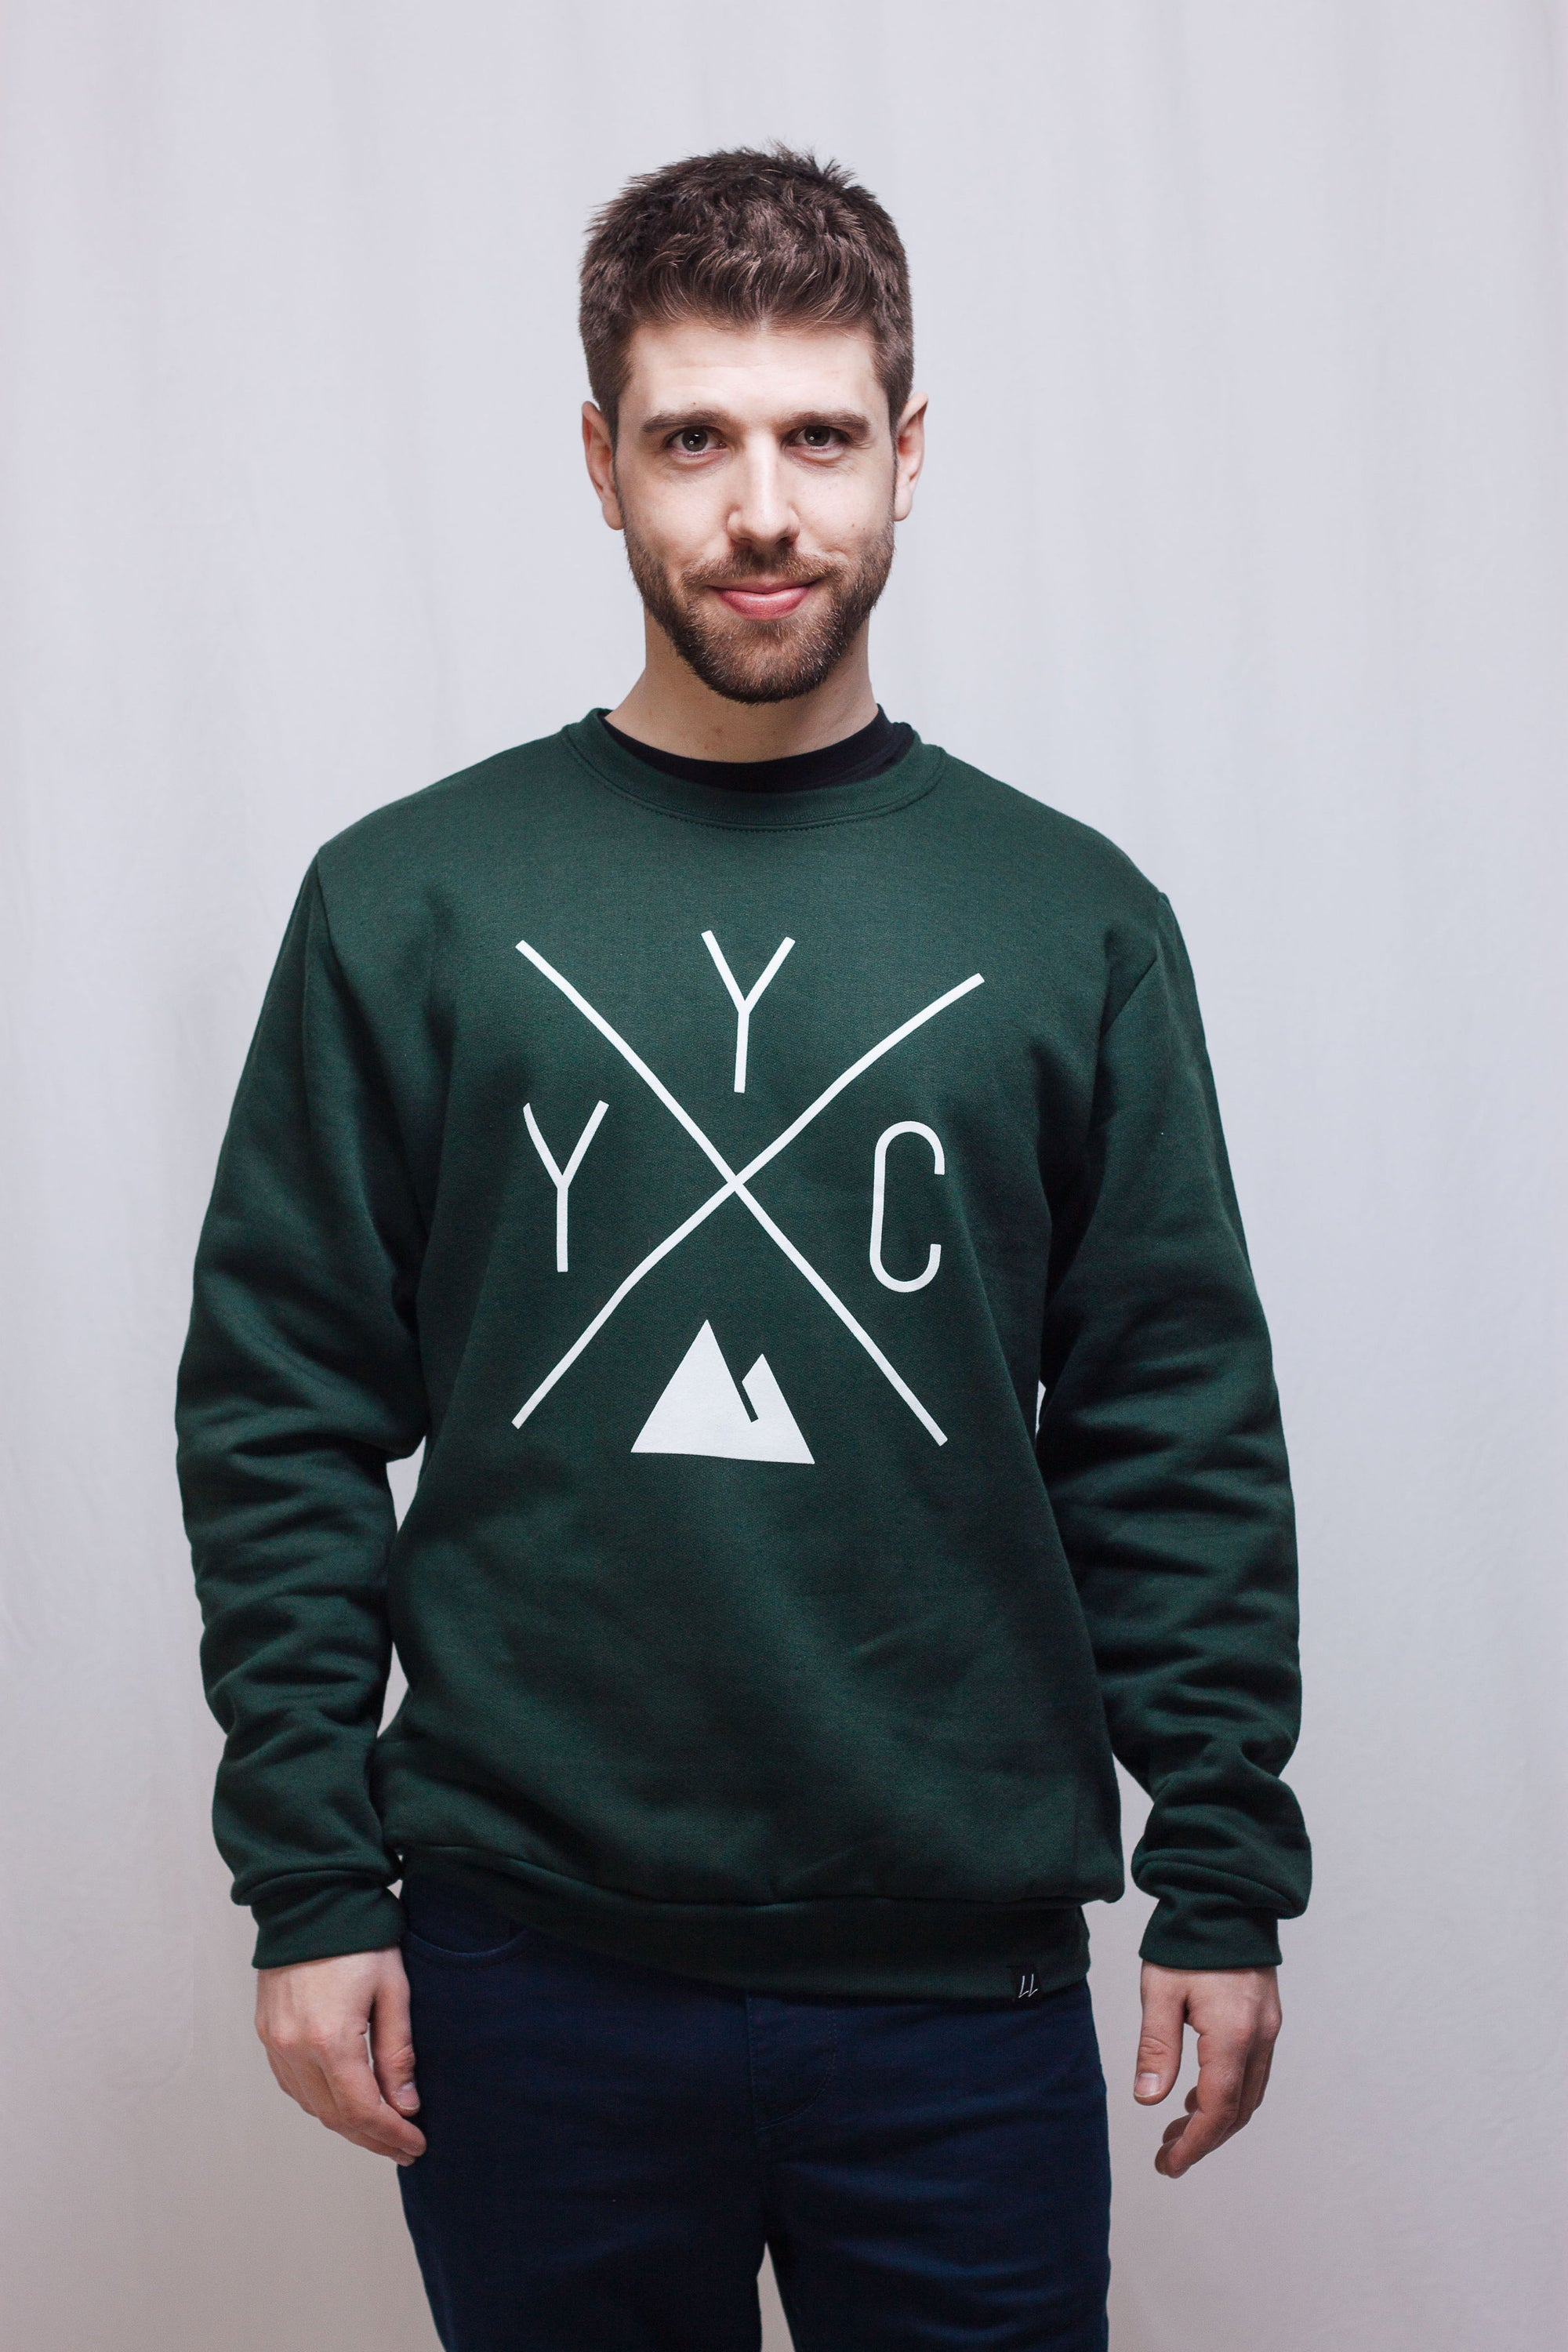 YYC Crewneck Sweatshirt - Forest Green 🇨🇦 - Local Laundry